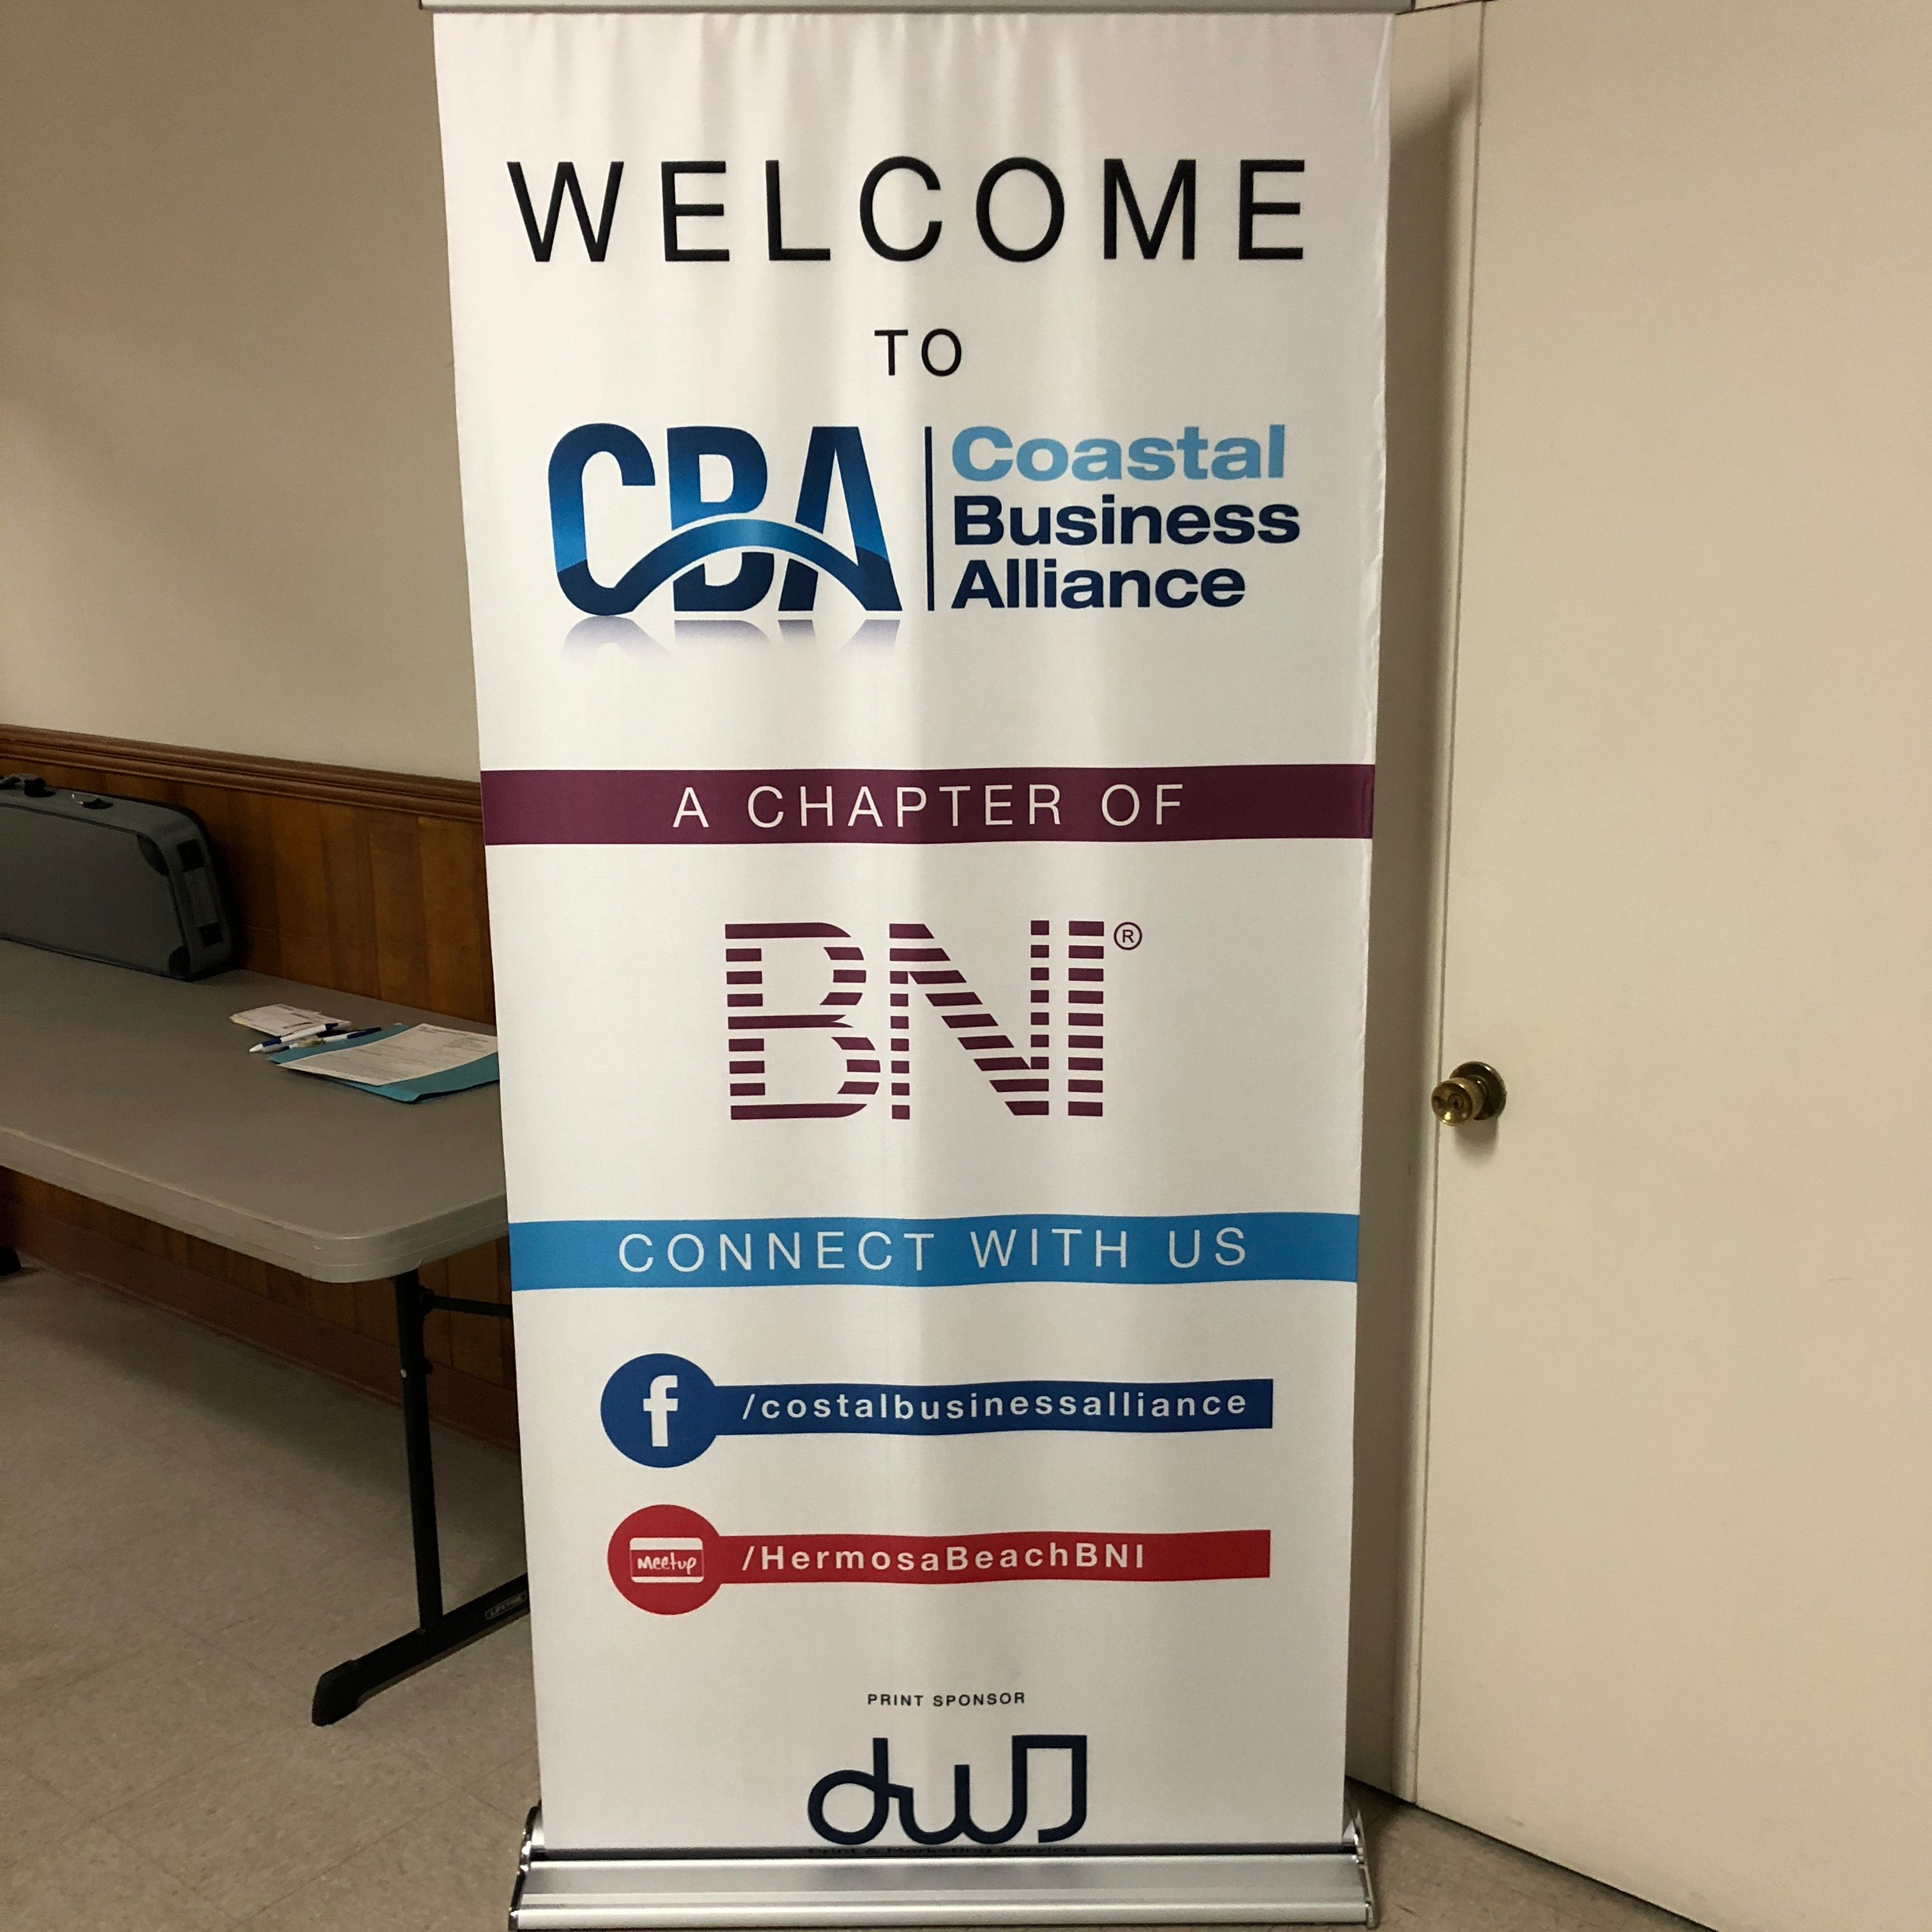 Coastal Business Alliance - BNI